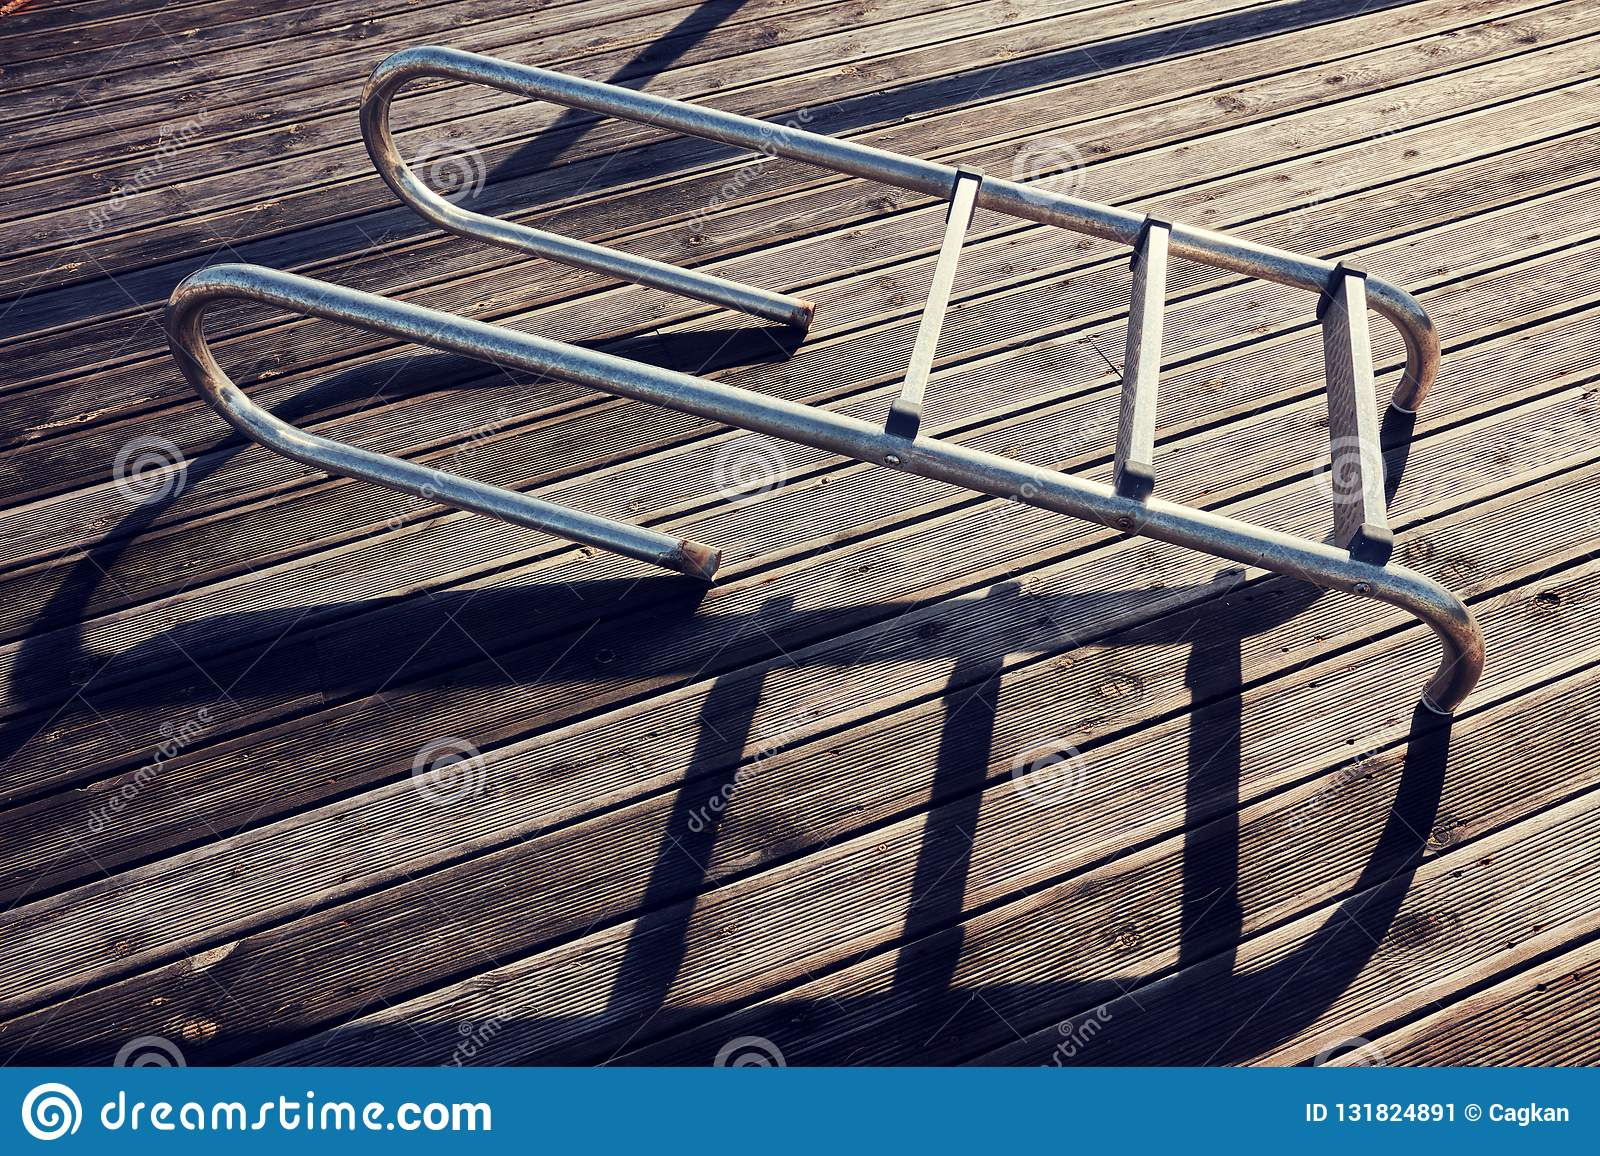 Detached Pool Ladder Stock Image Image Of Floor Object 131824891